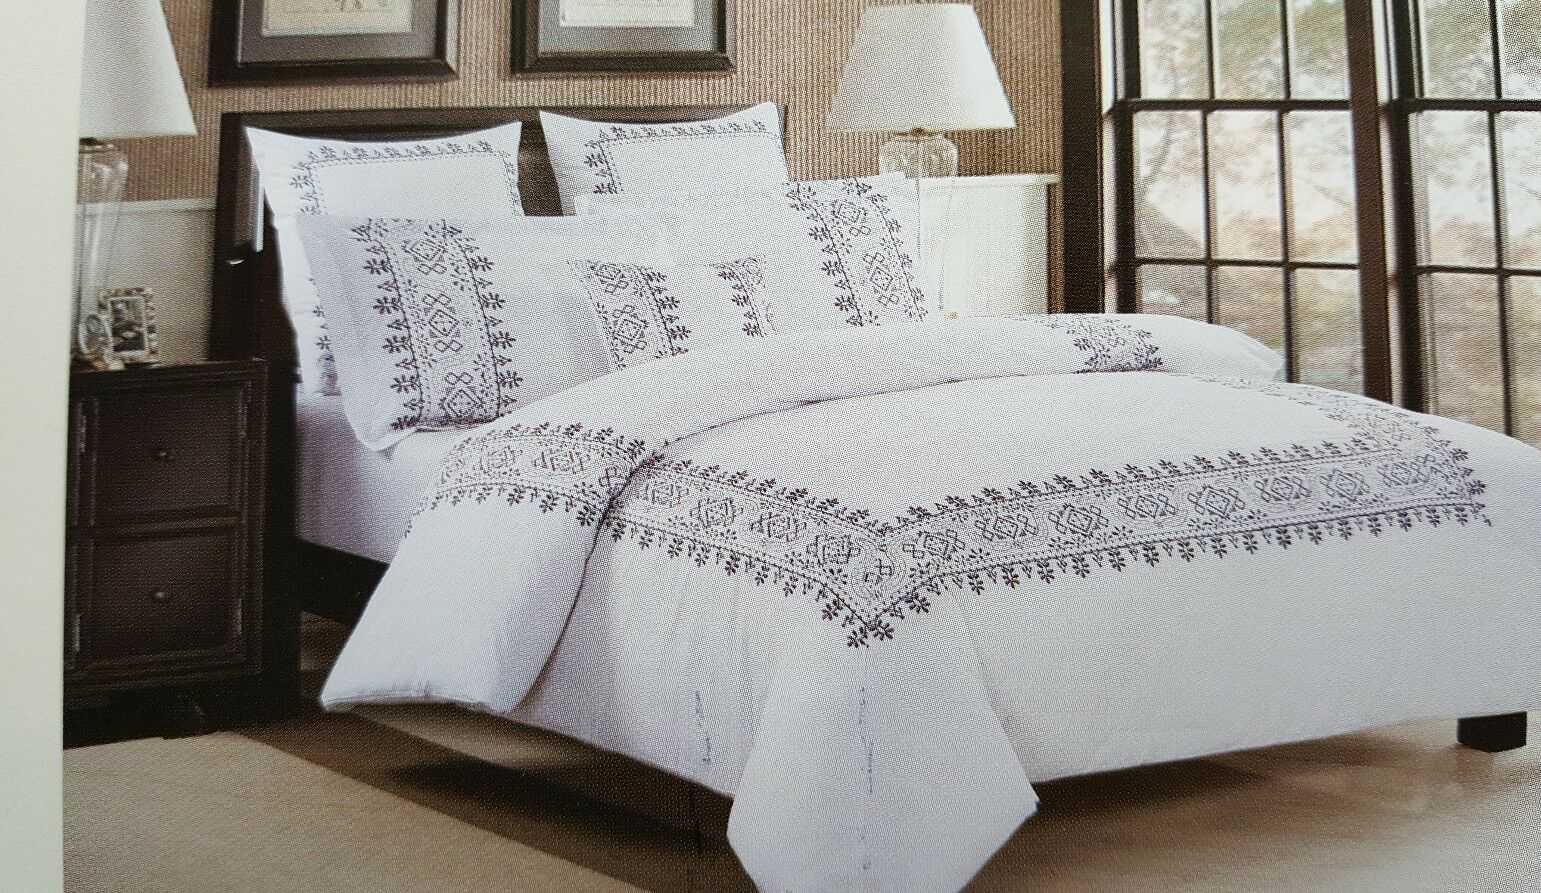 Luxe King Größe 3 Piece  Duvet Set 100% Cotton(Exclusive of embroidery)